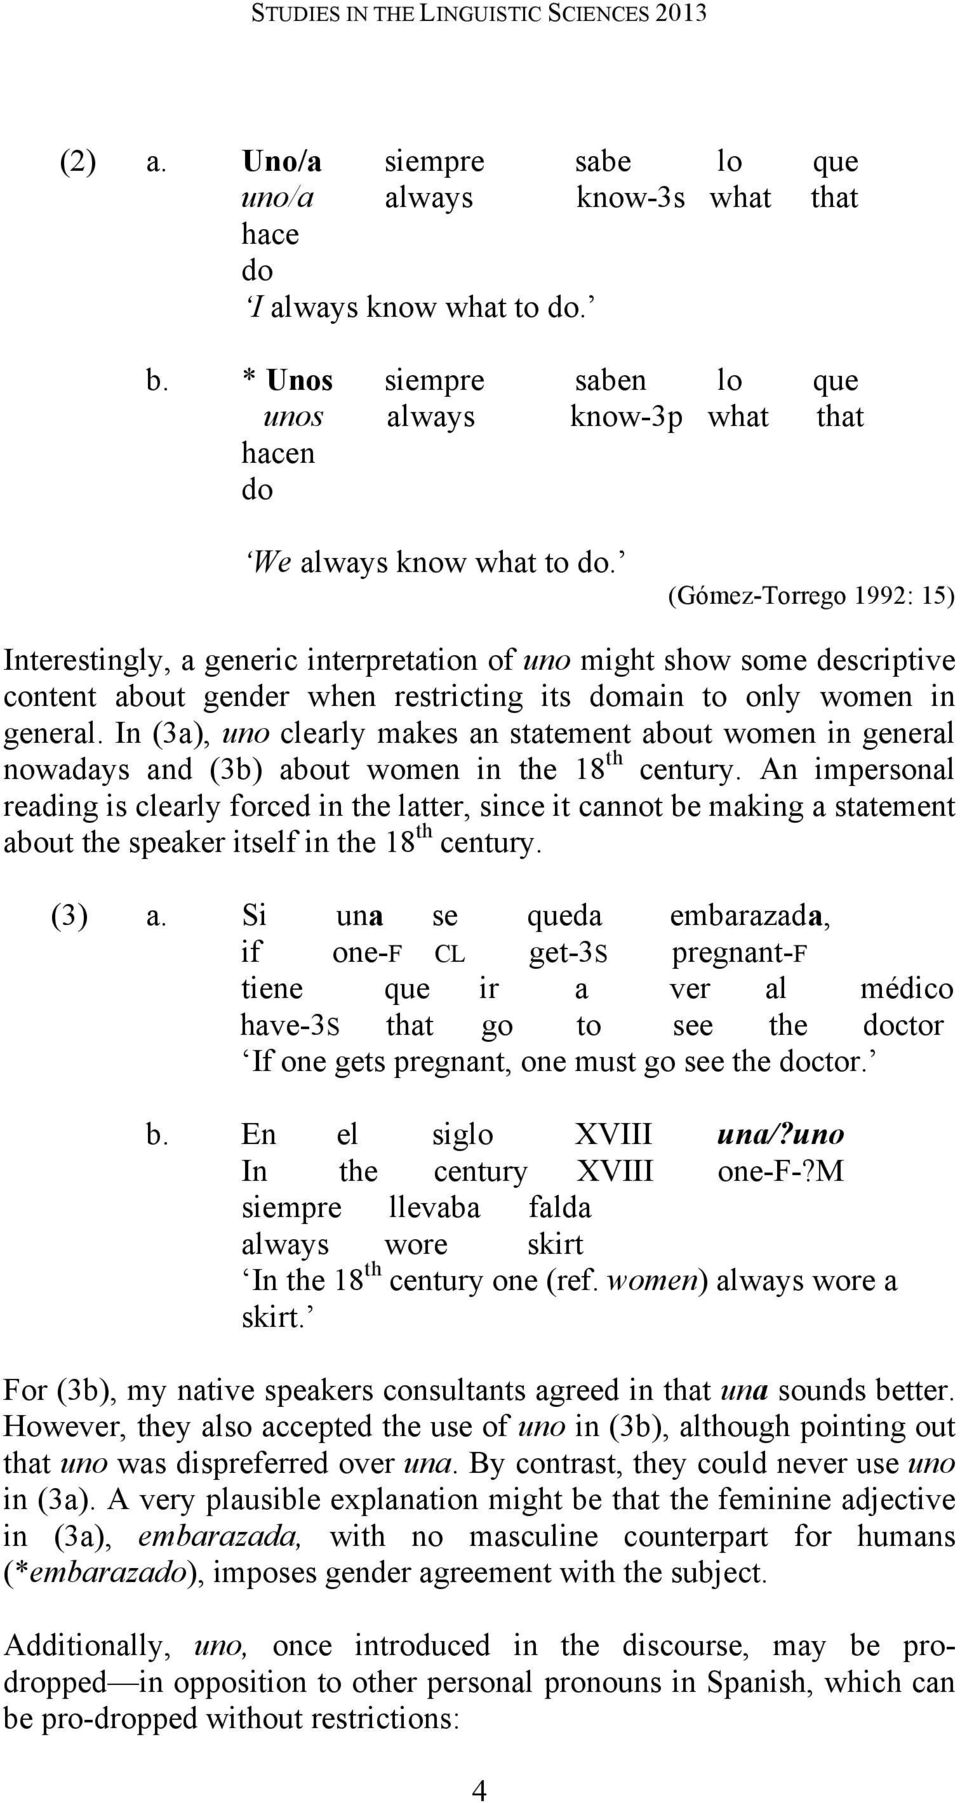 (Gómez-Torrego 1992: 15) Interestingly, a generic interpretation of uno might show some descriptive content about gender when restricting its domain to only women in general.